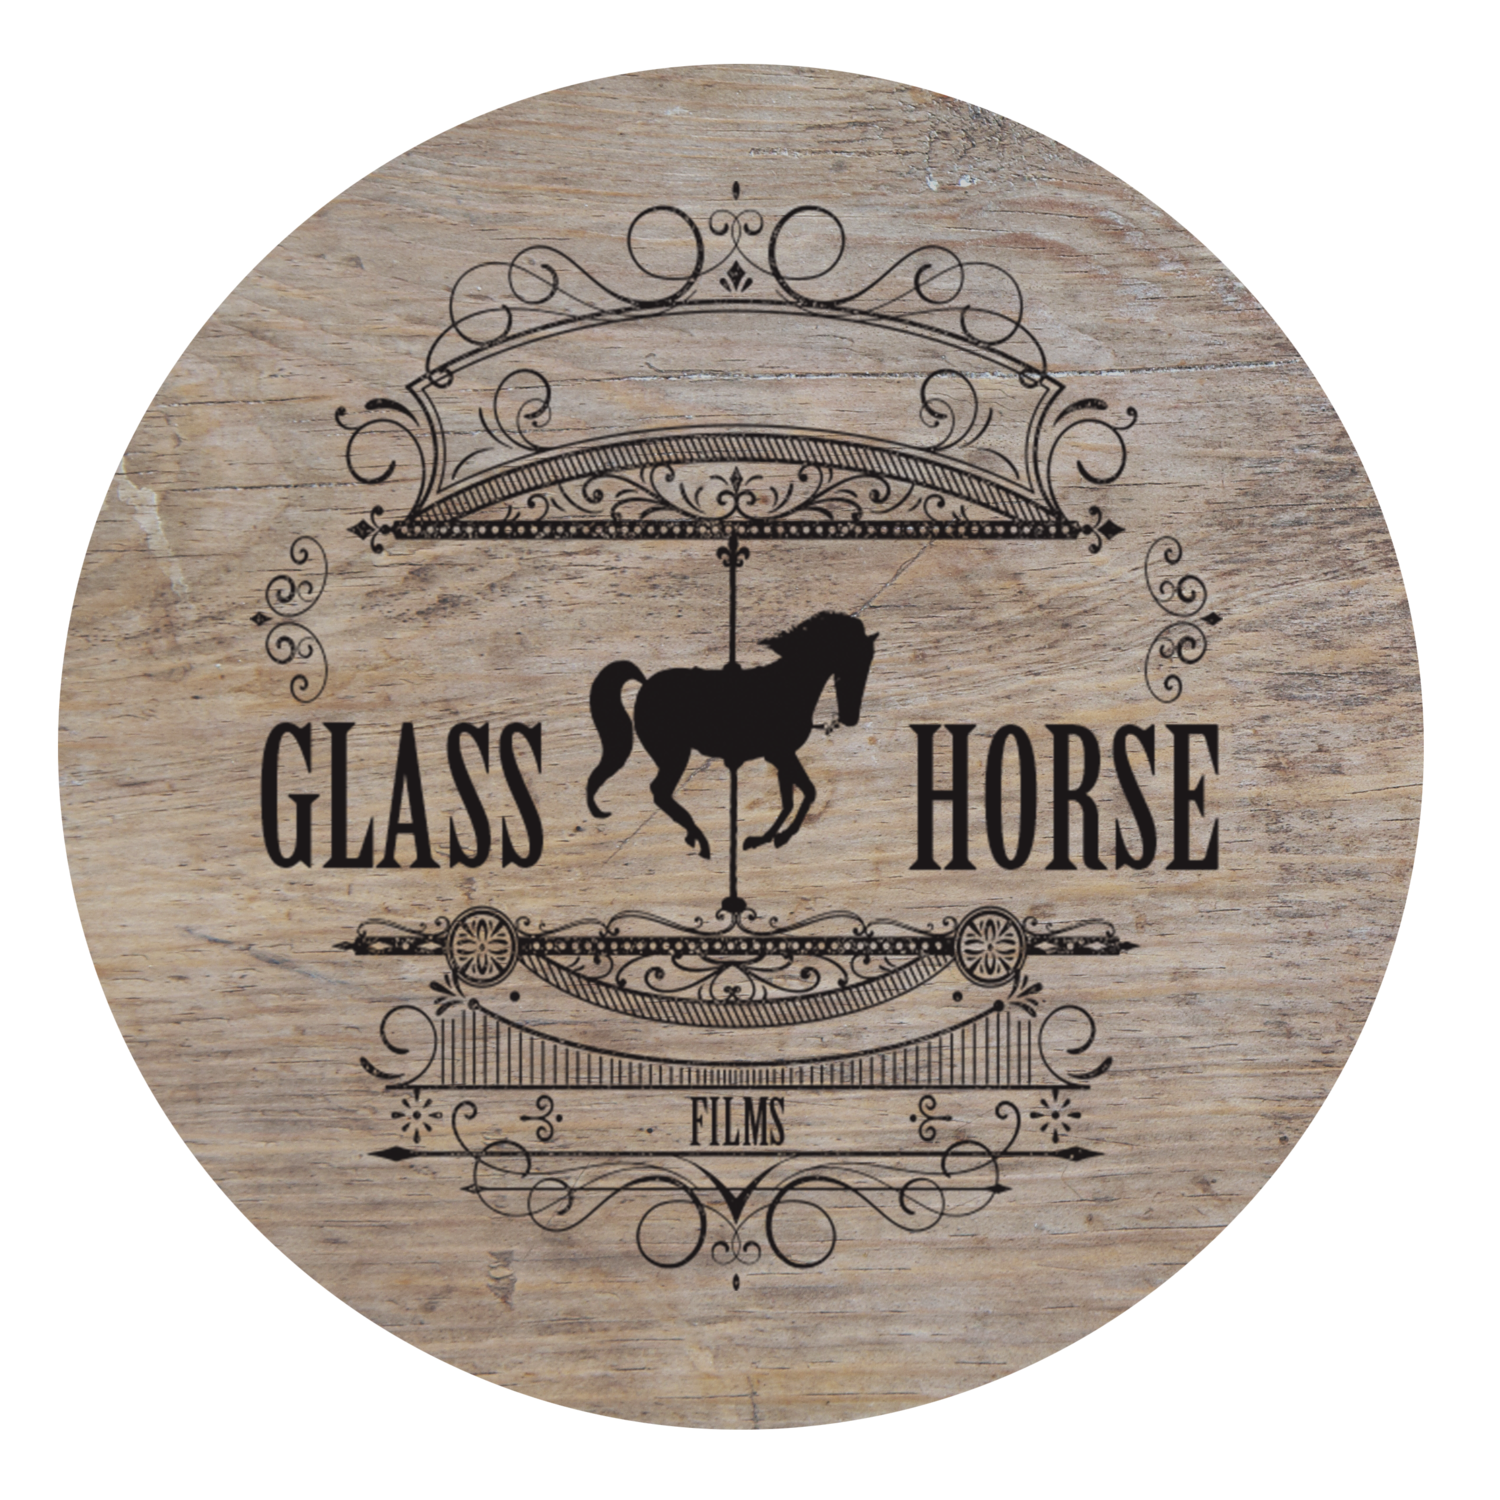 Glass Horse FIlms